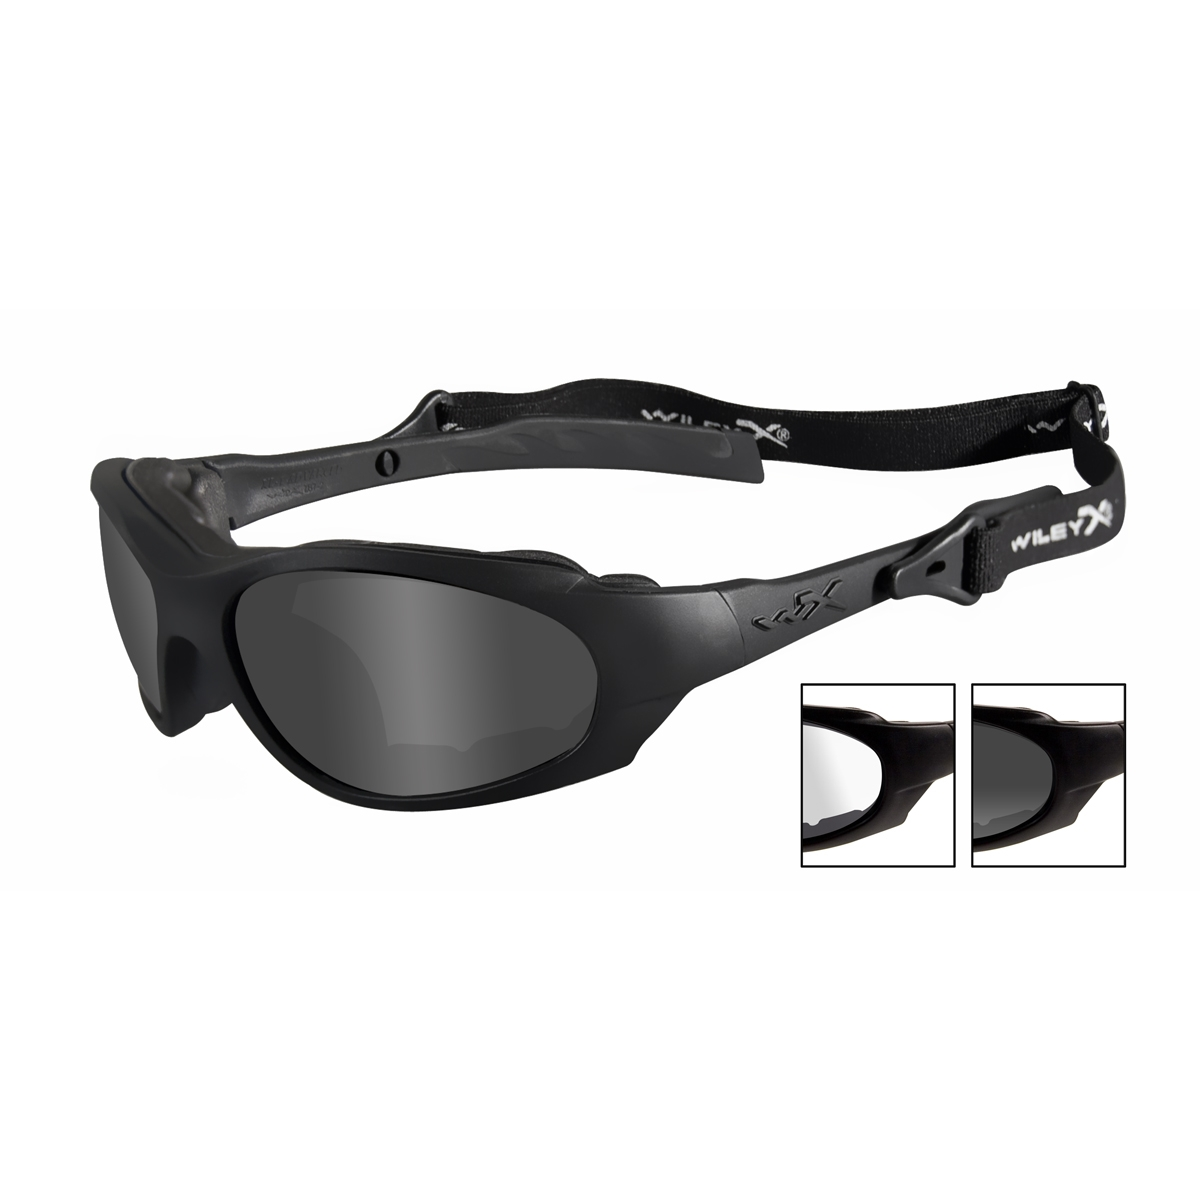 cbcd87af2a9 Wiley X XL-1 Advanced Safety Glasses - Matte Black Frame - Grey   Clear  Lenses